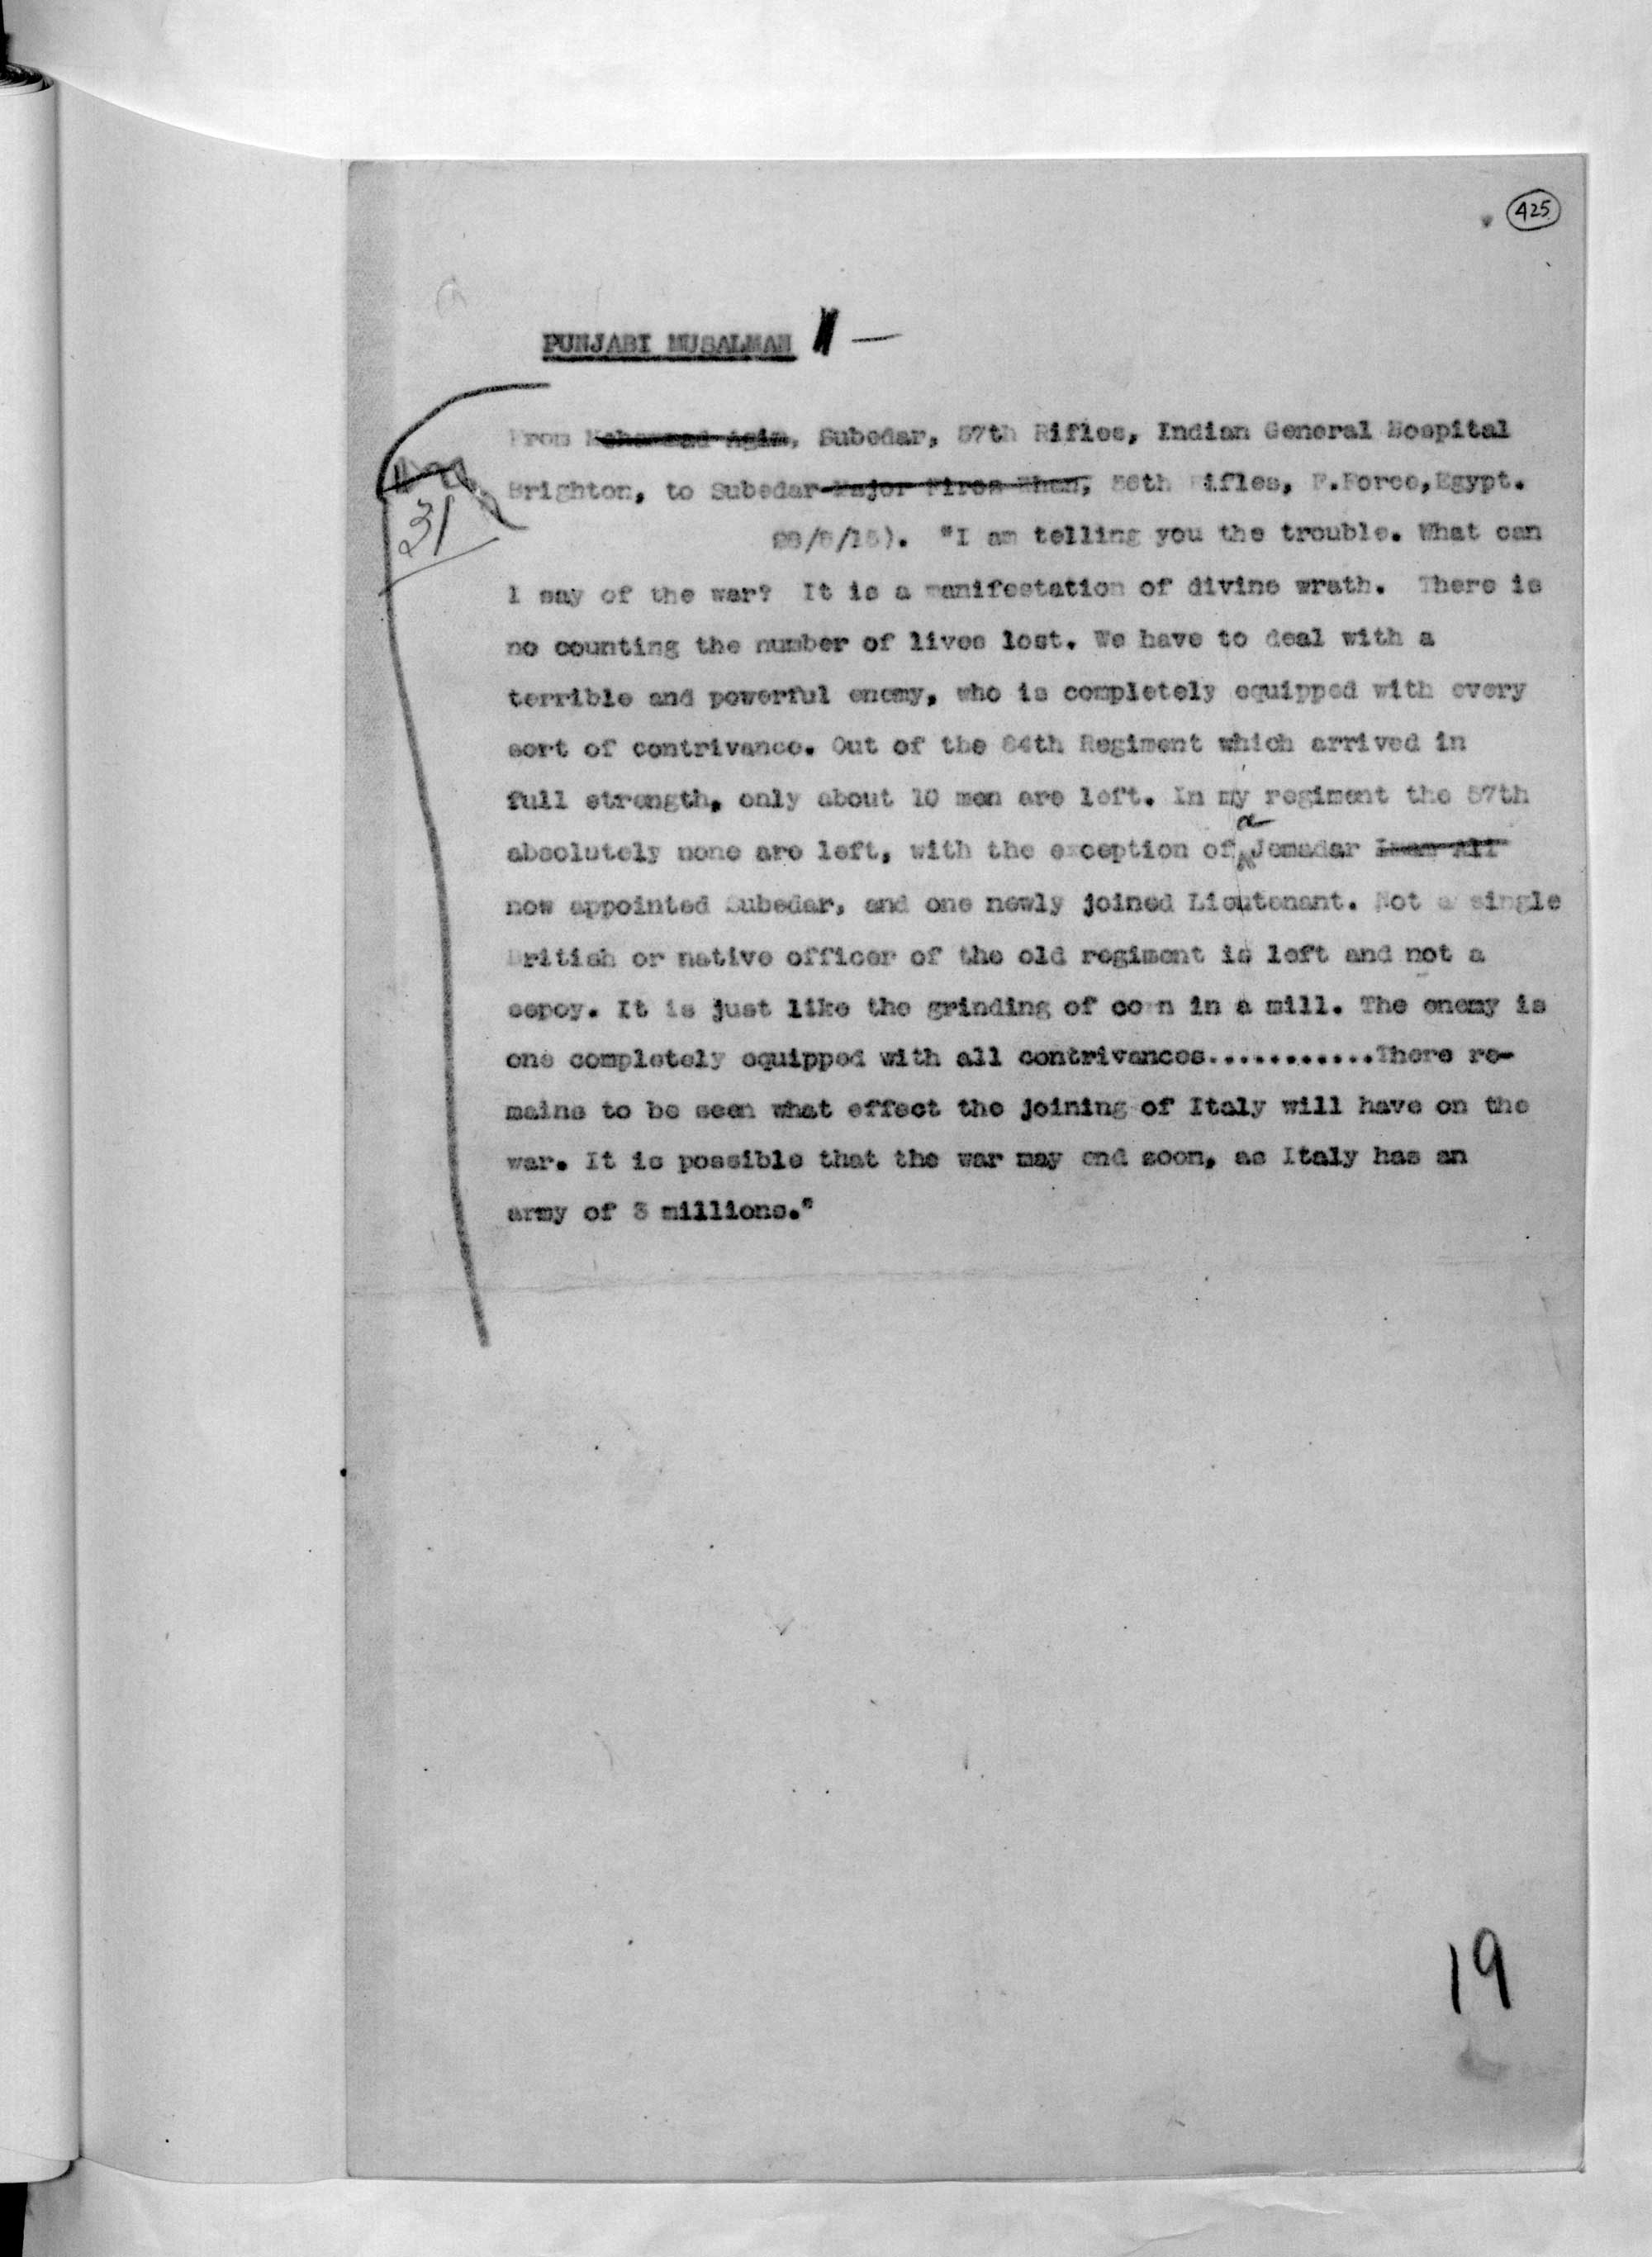 This censored letter was written in 1915 by Indian soldier, Mohammed Agim. He describes the high loss of life amongst Indian troops.